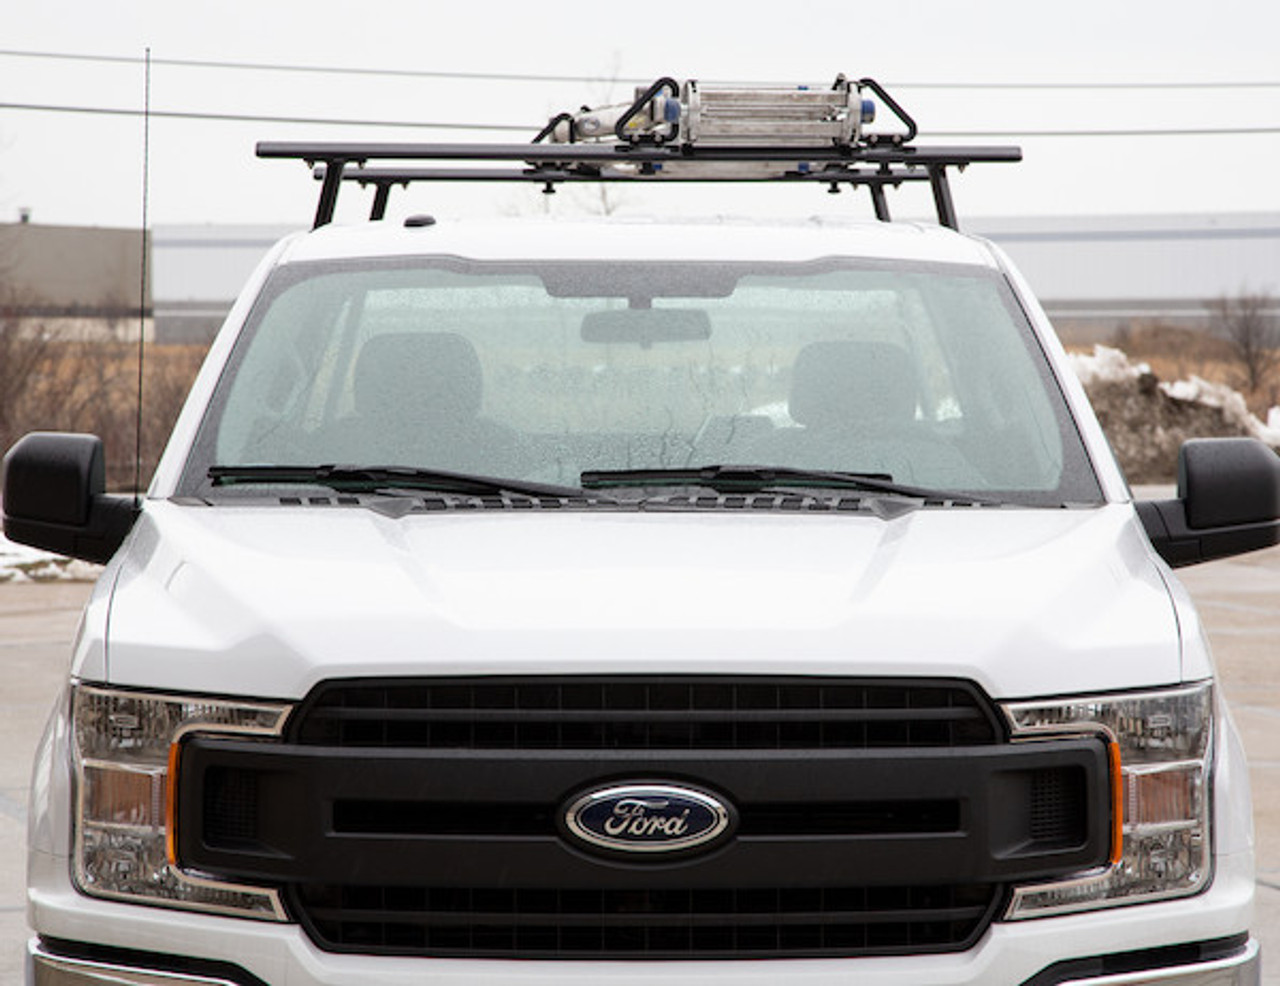 BUYERS 1501680 Black Aluminum Truck Rack for Contractors, Construction, Electricians Picture # 6